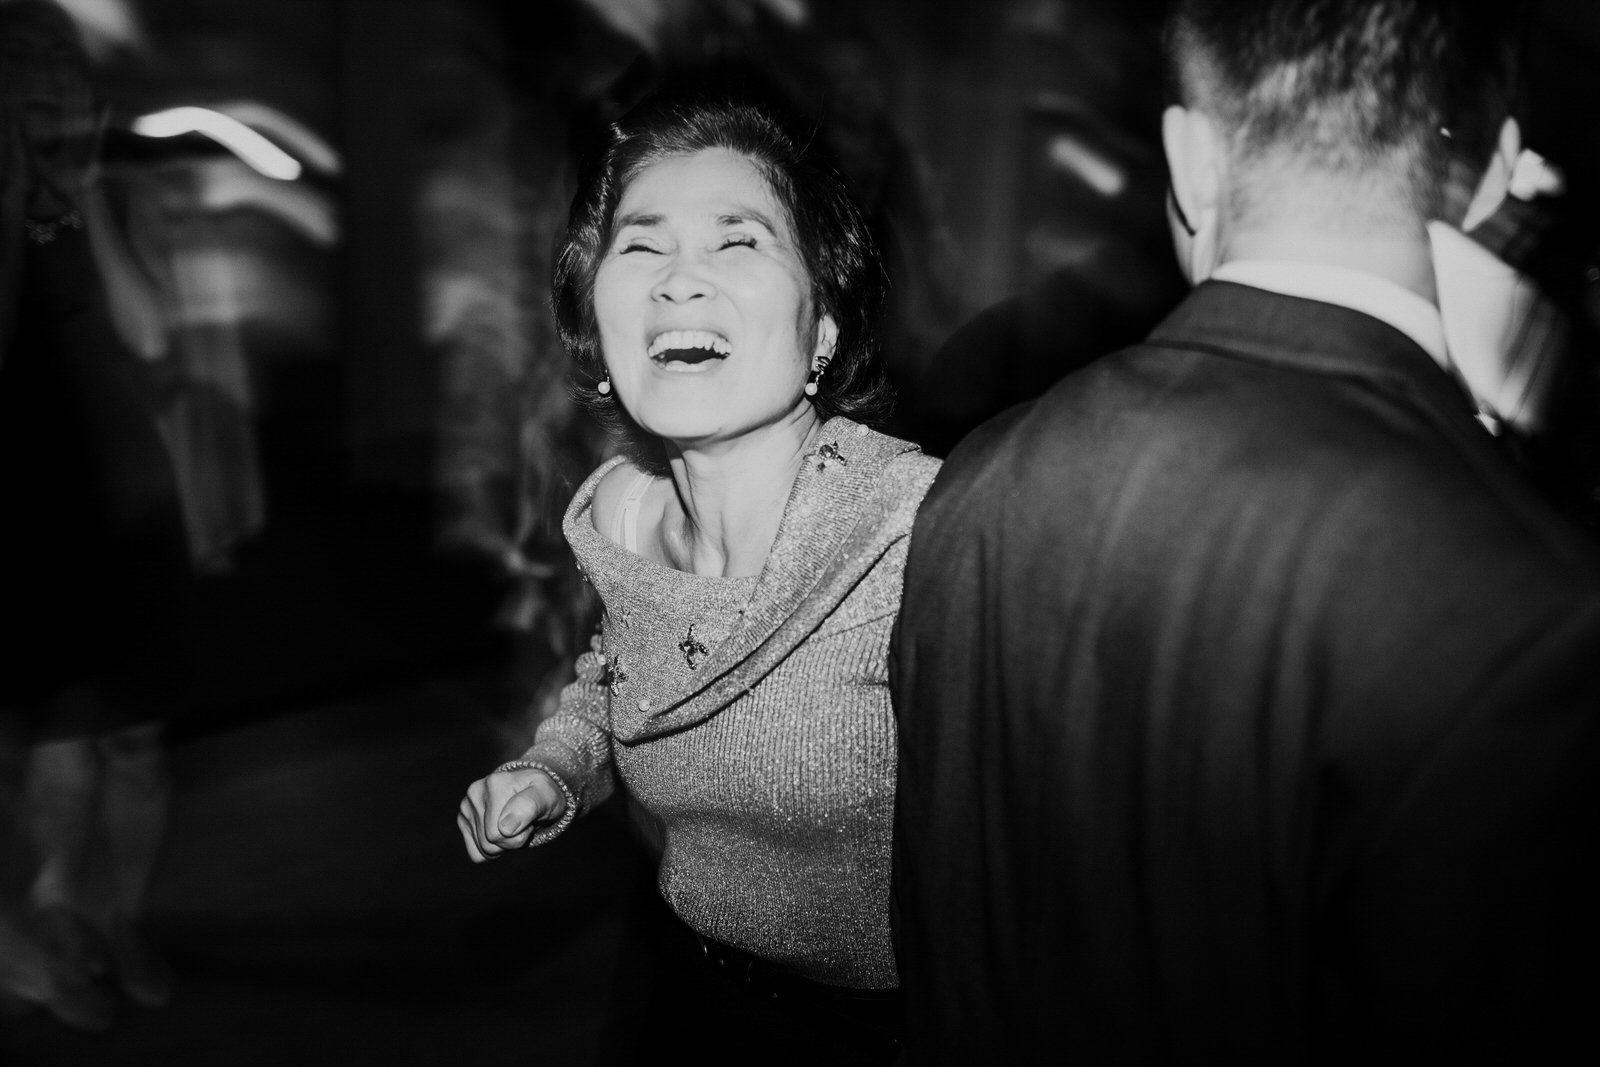 Guests laugh while dancing at the reception